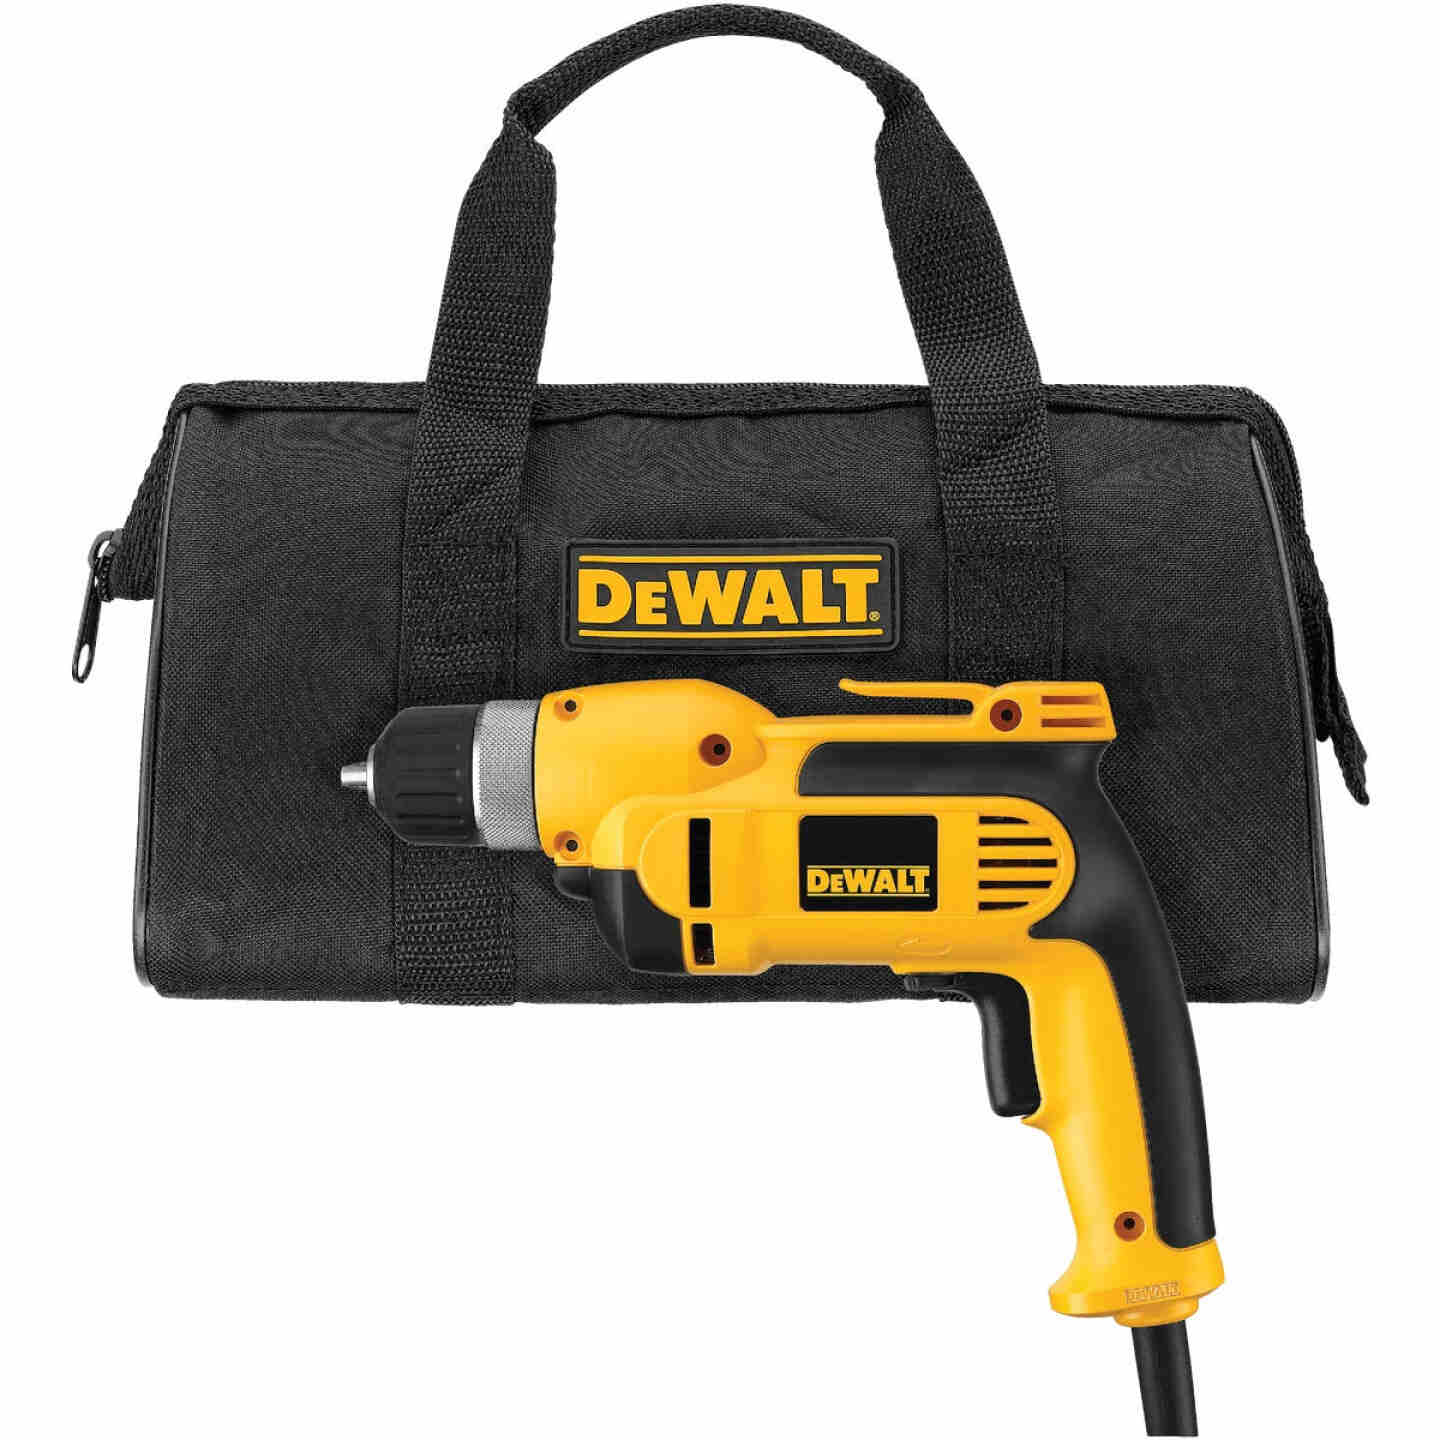 DeWalt 3/8 In. 8-Amp Keyless Electric Drill with Case Image 5